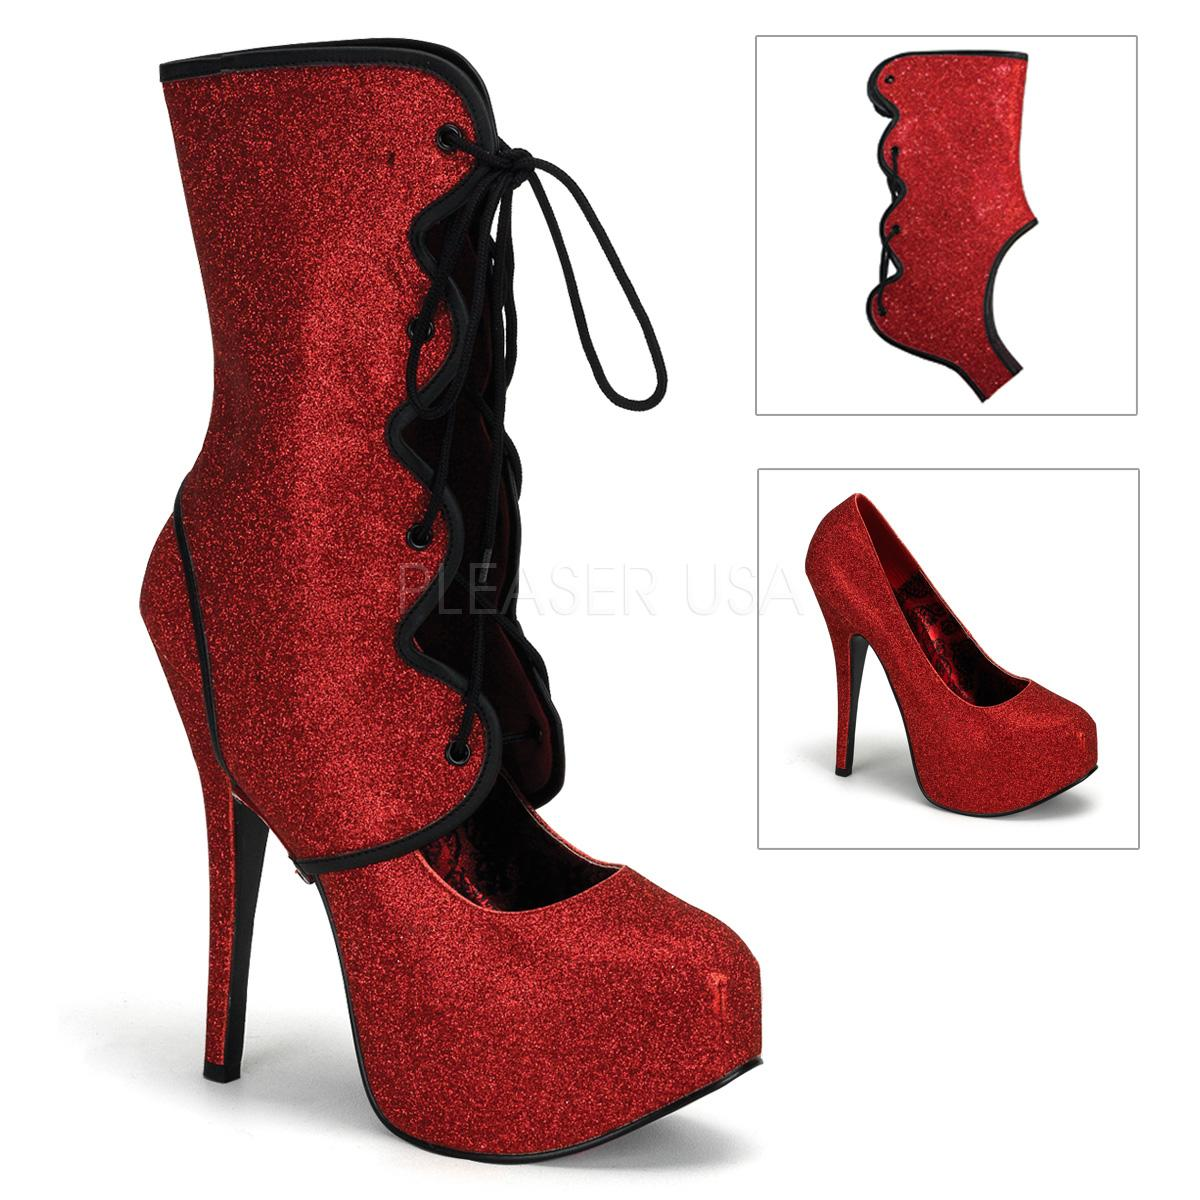 Red Glitter Court Shoe/Boot